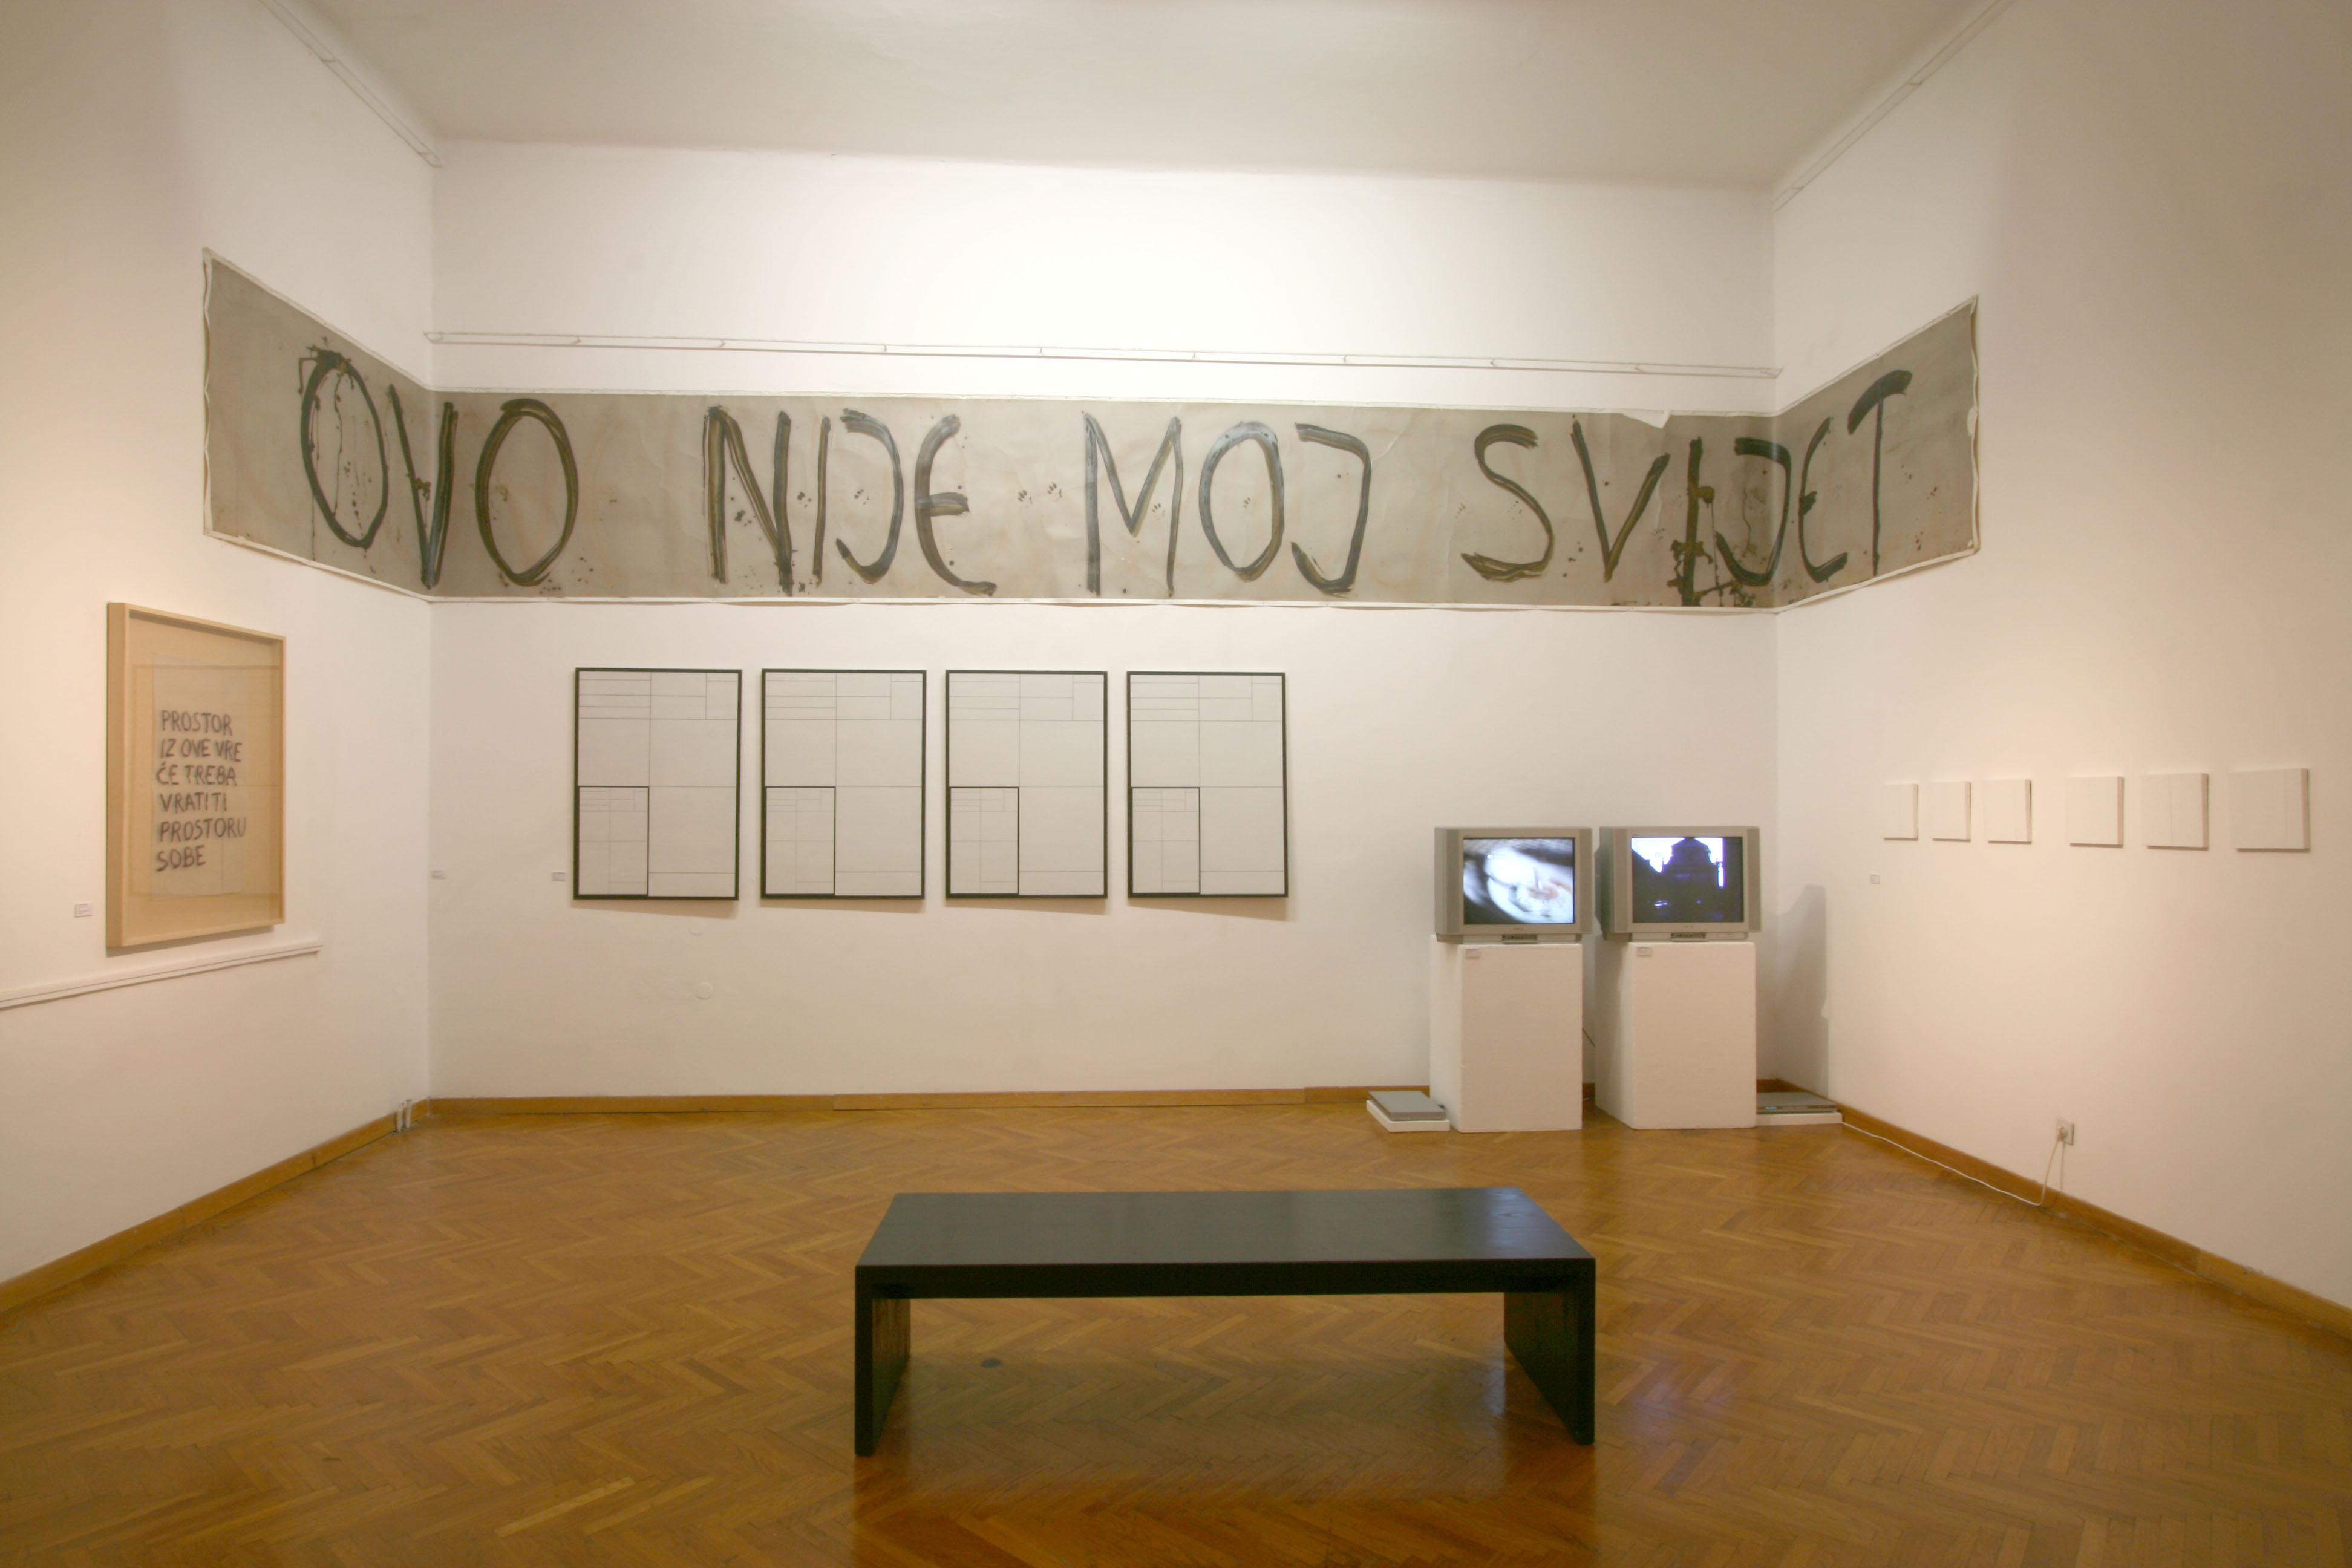 Exhibition in Rijeka in 2007 in the Museum of Modern and Contemporary Art